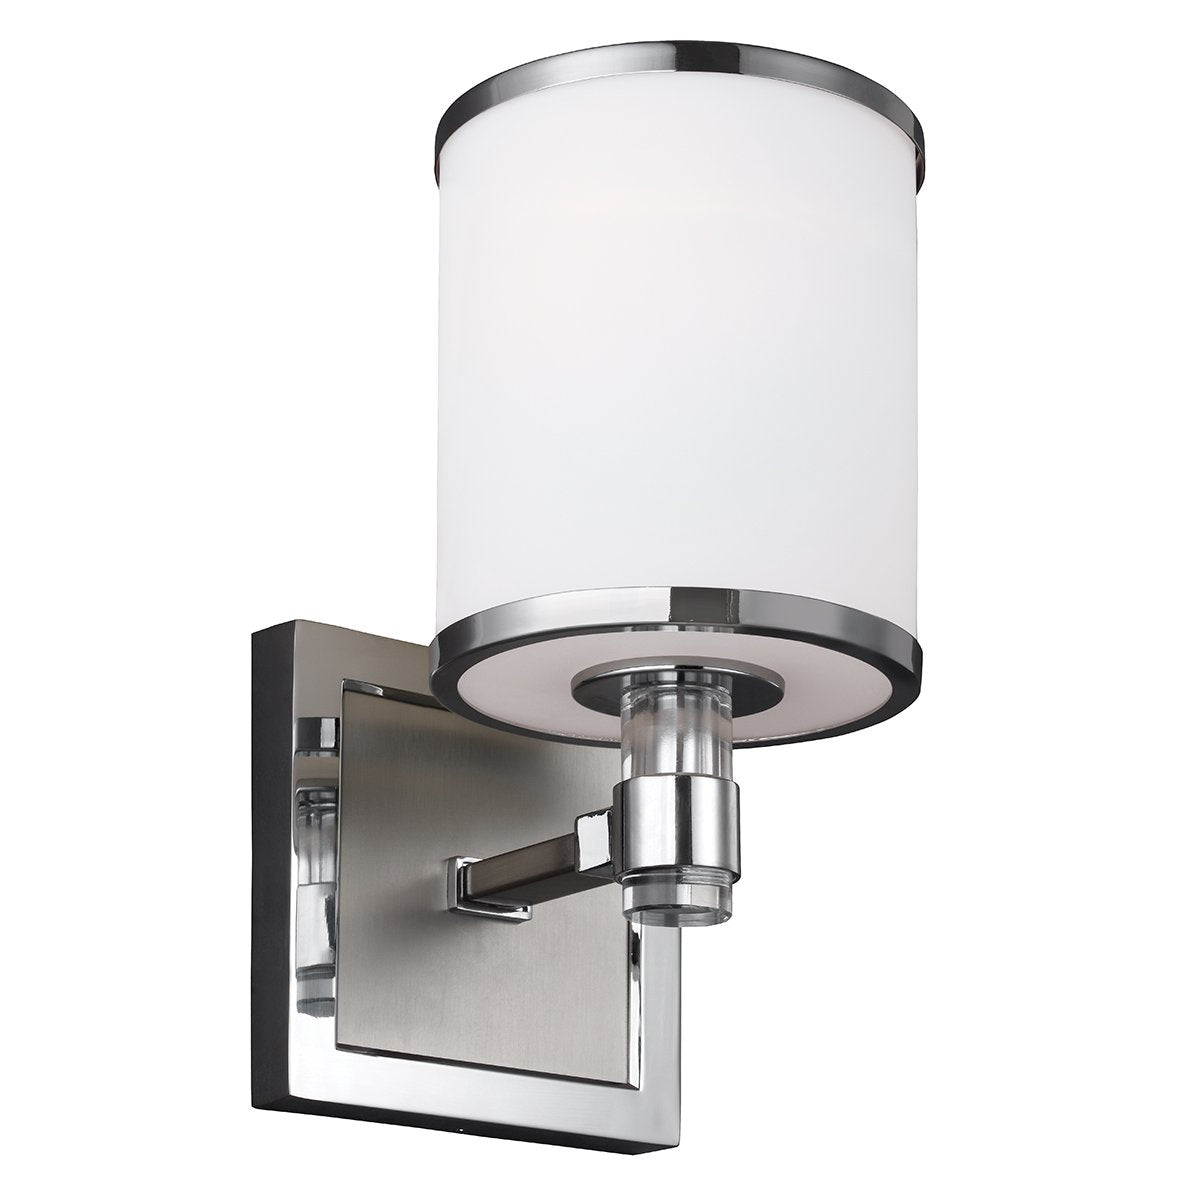 Prospect Park Satin Nickel Wall Light